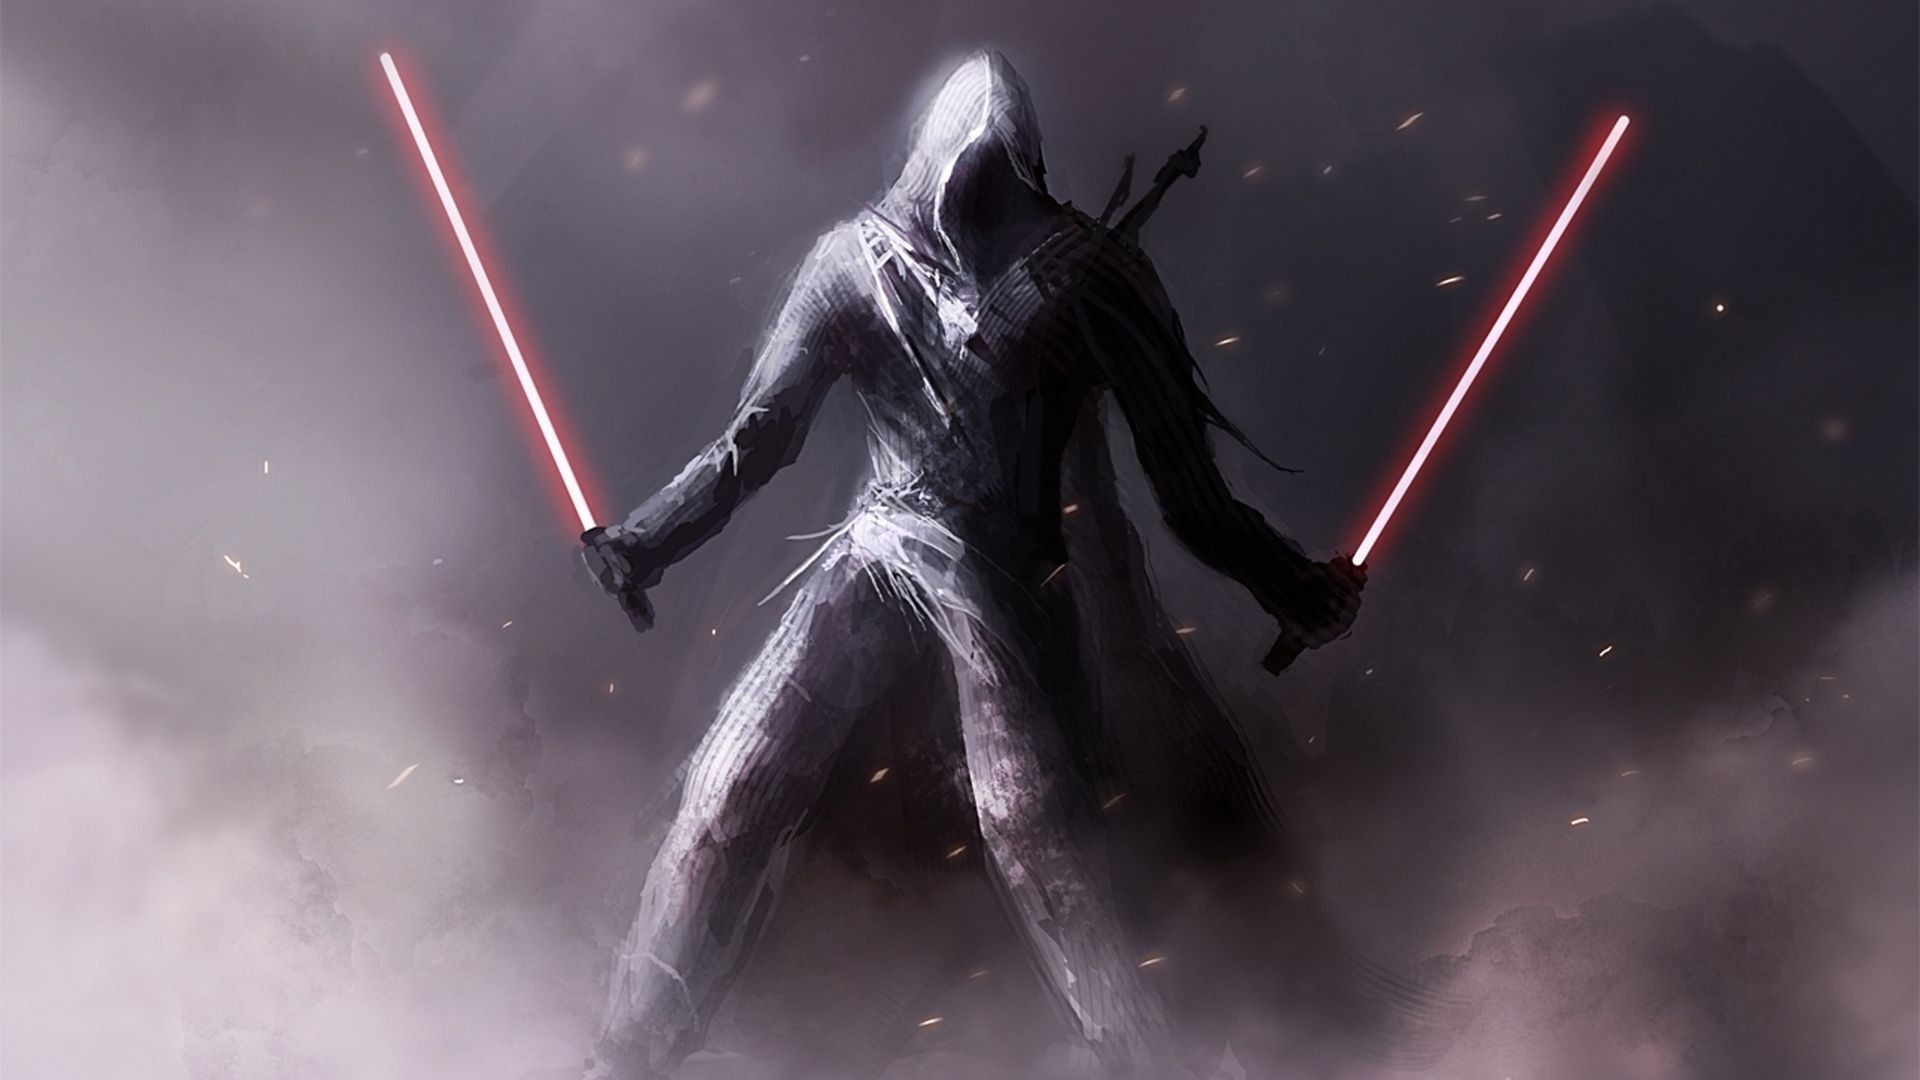 Res: 1920x1080, Star Wars Sith Wallpapers Phone On Wallpaper 1080p HD